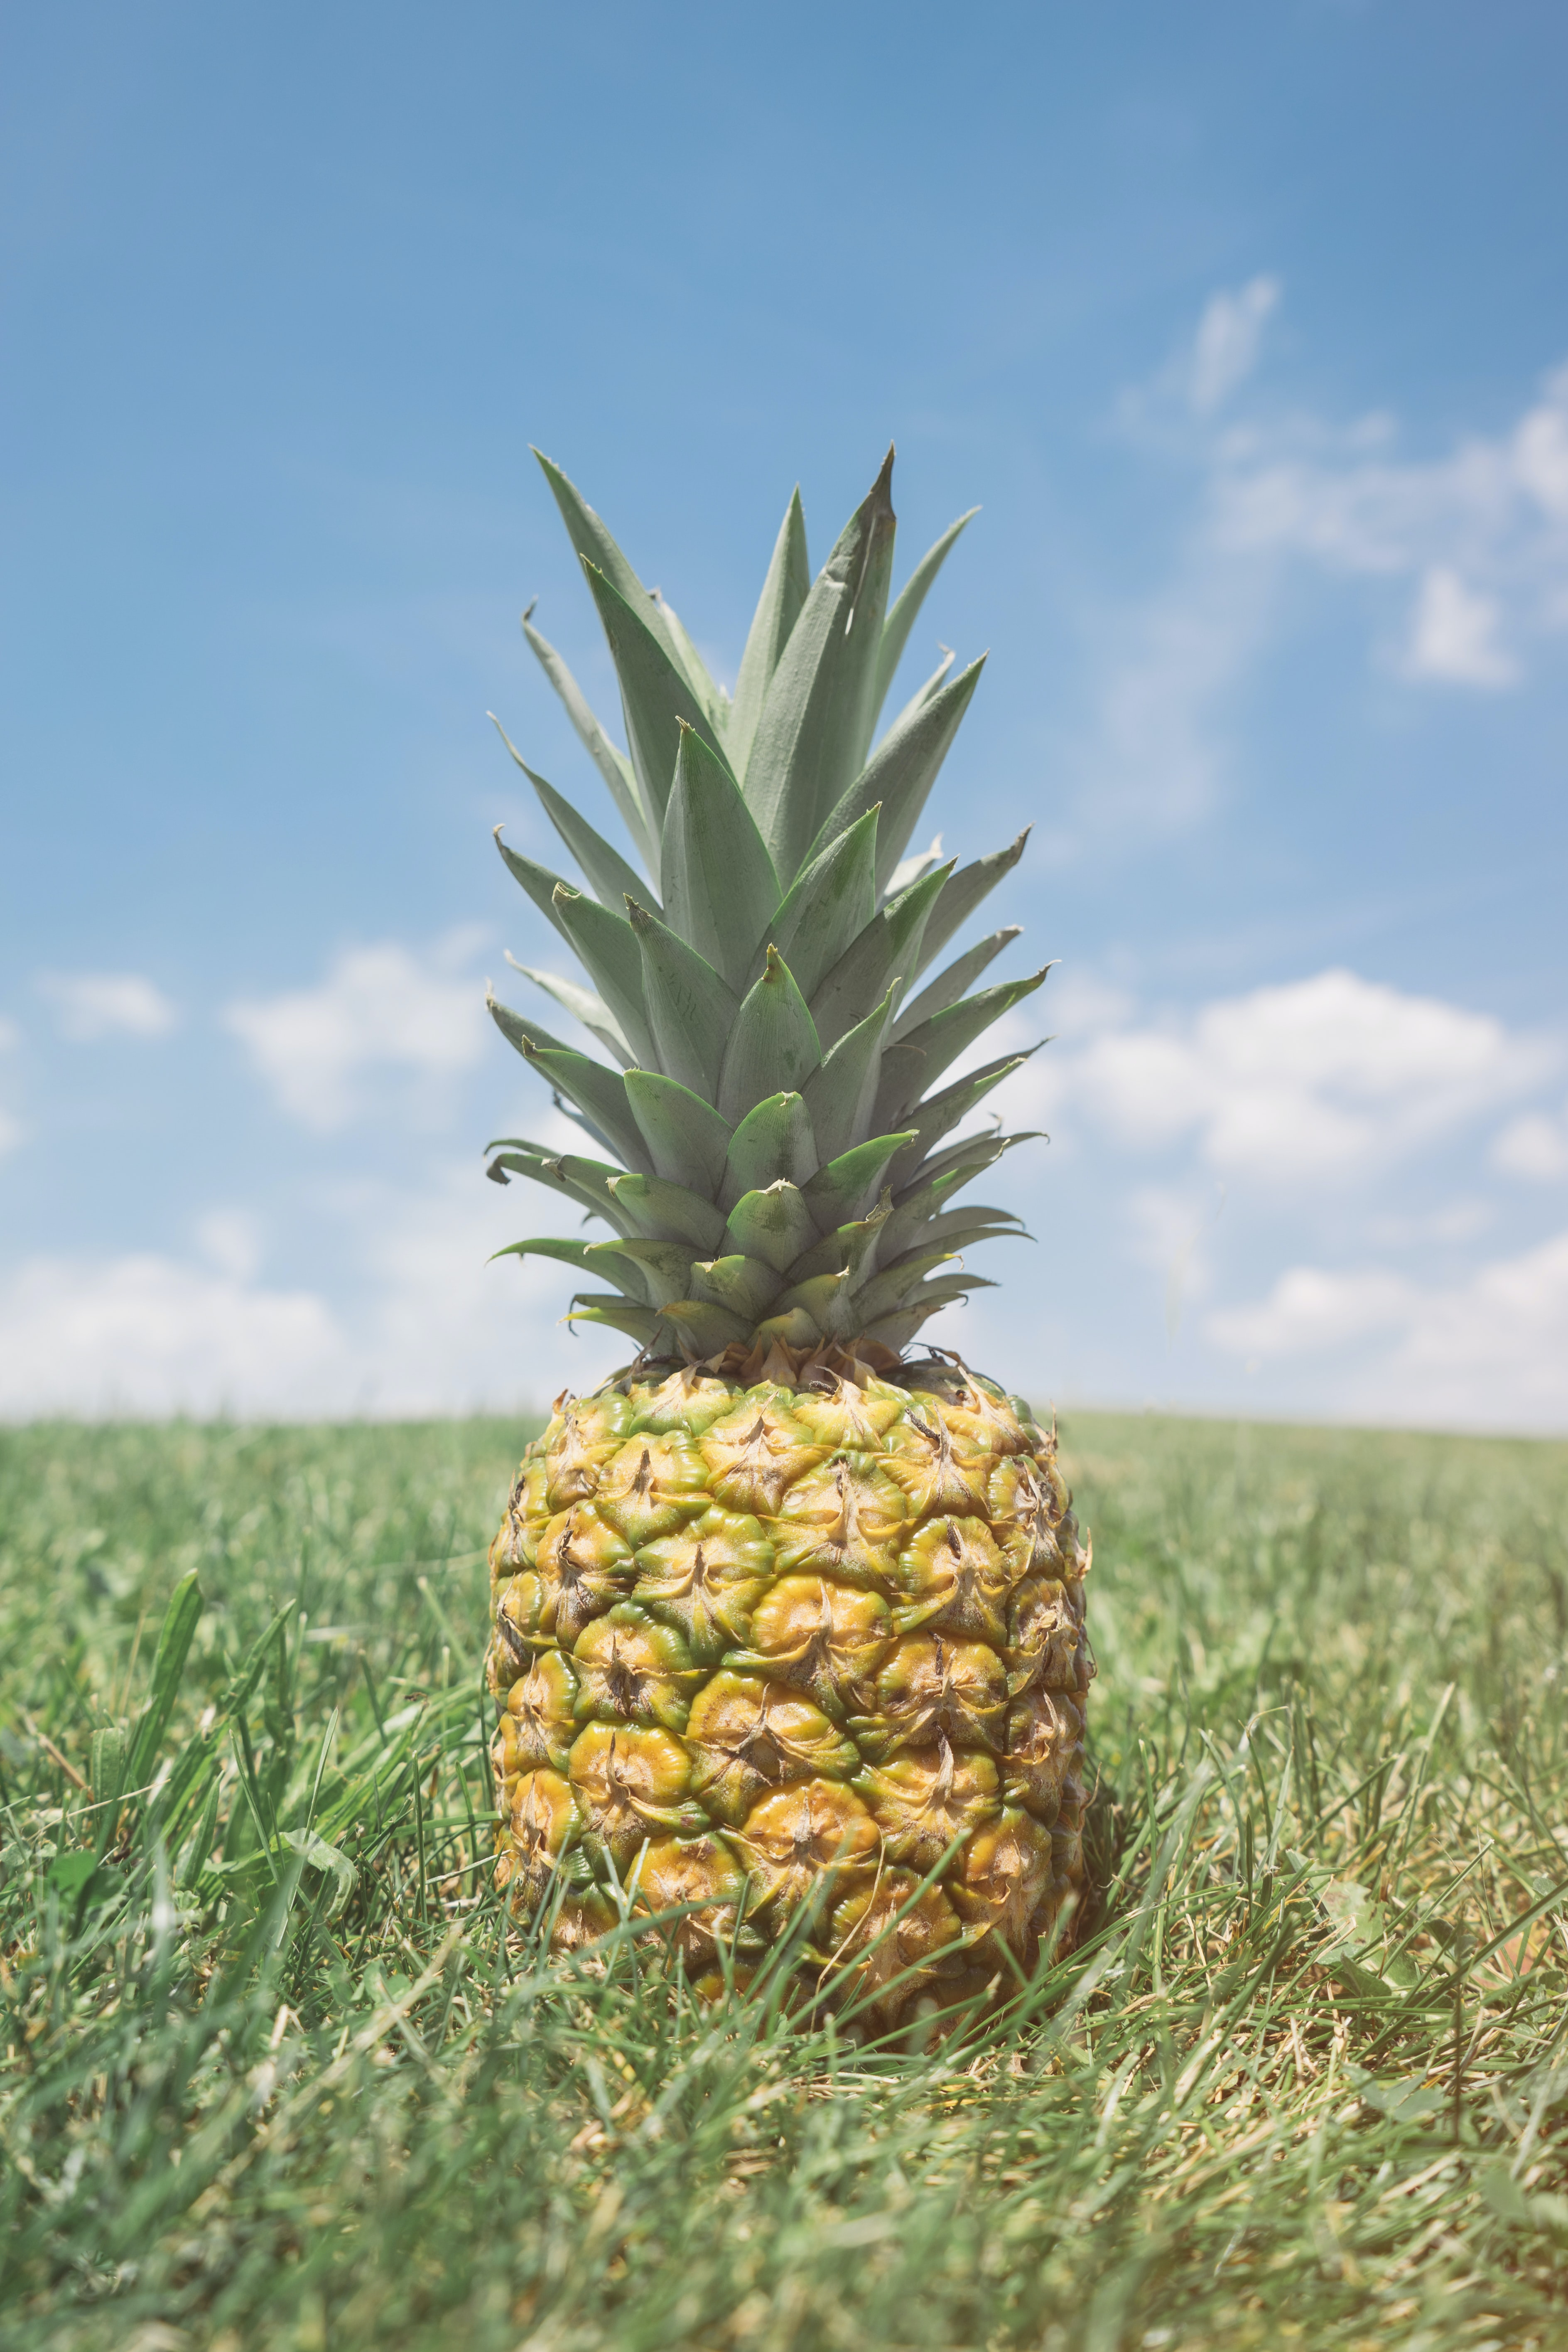 Single pineapple in the grass on a sunny day